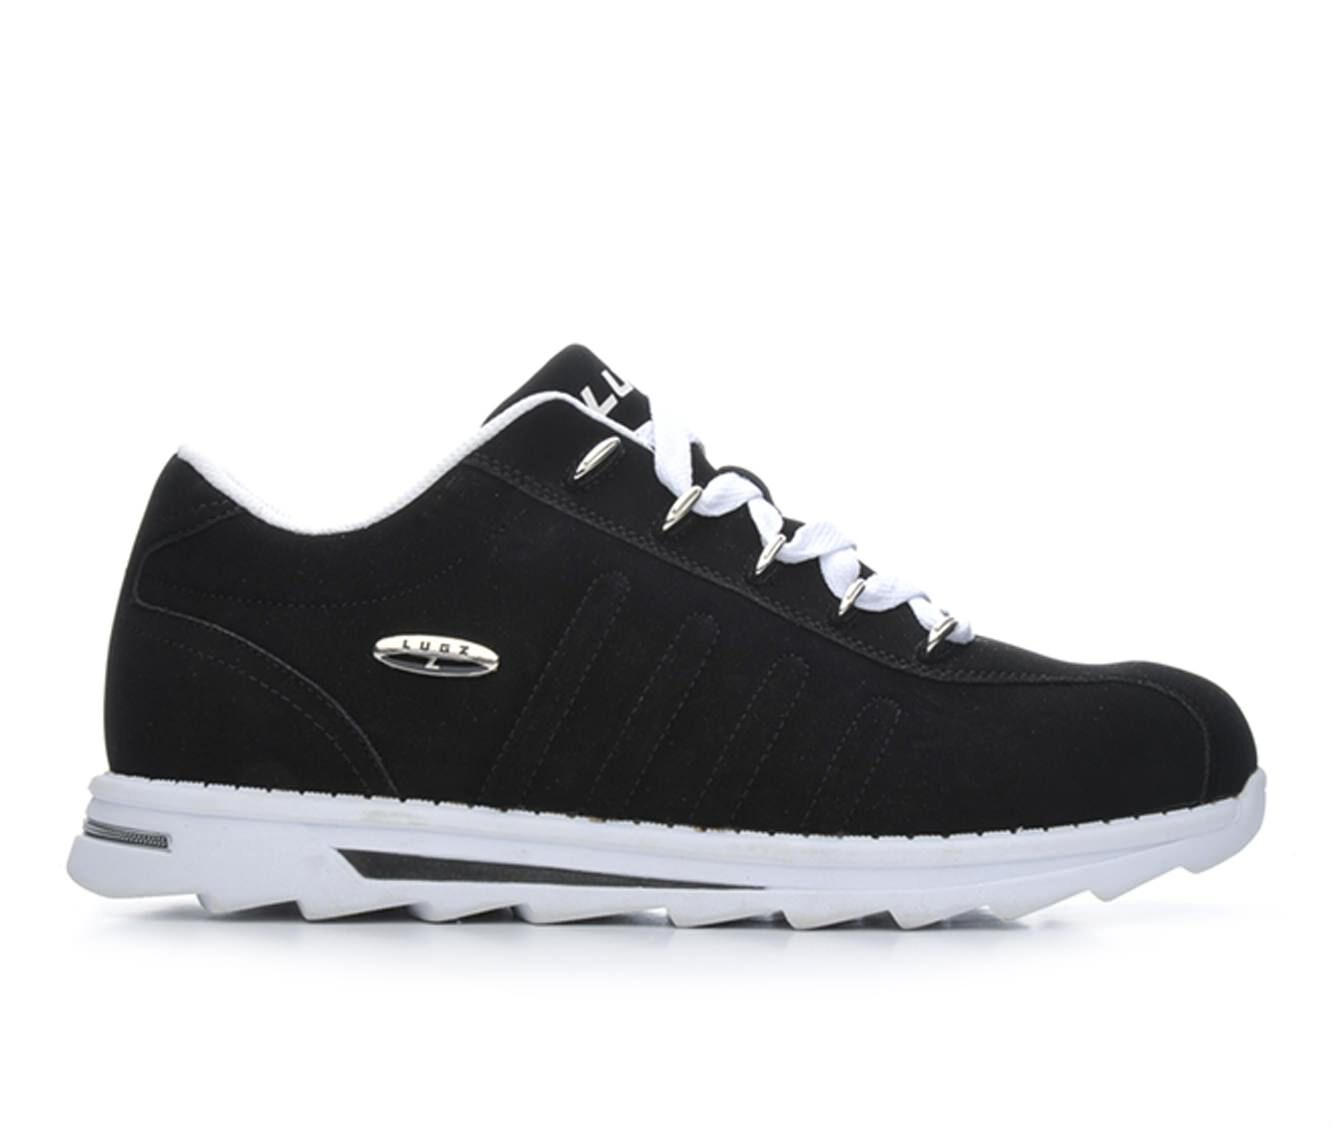 Men's Lugz Changeover II Black/Snow Wht